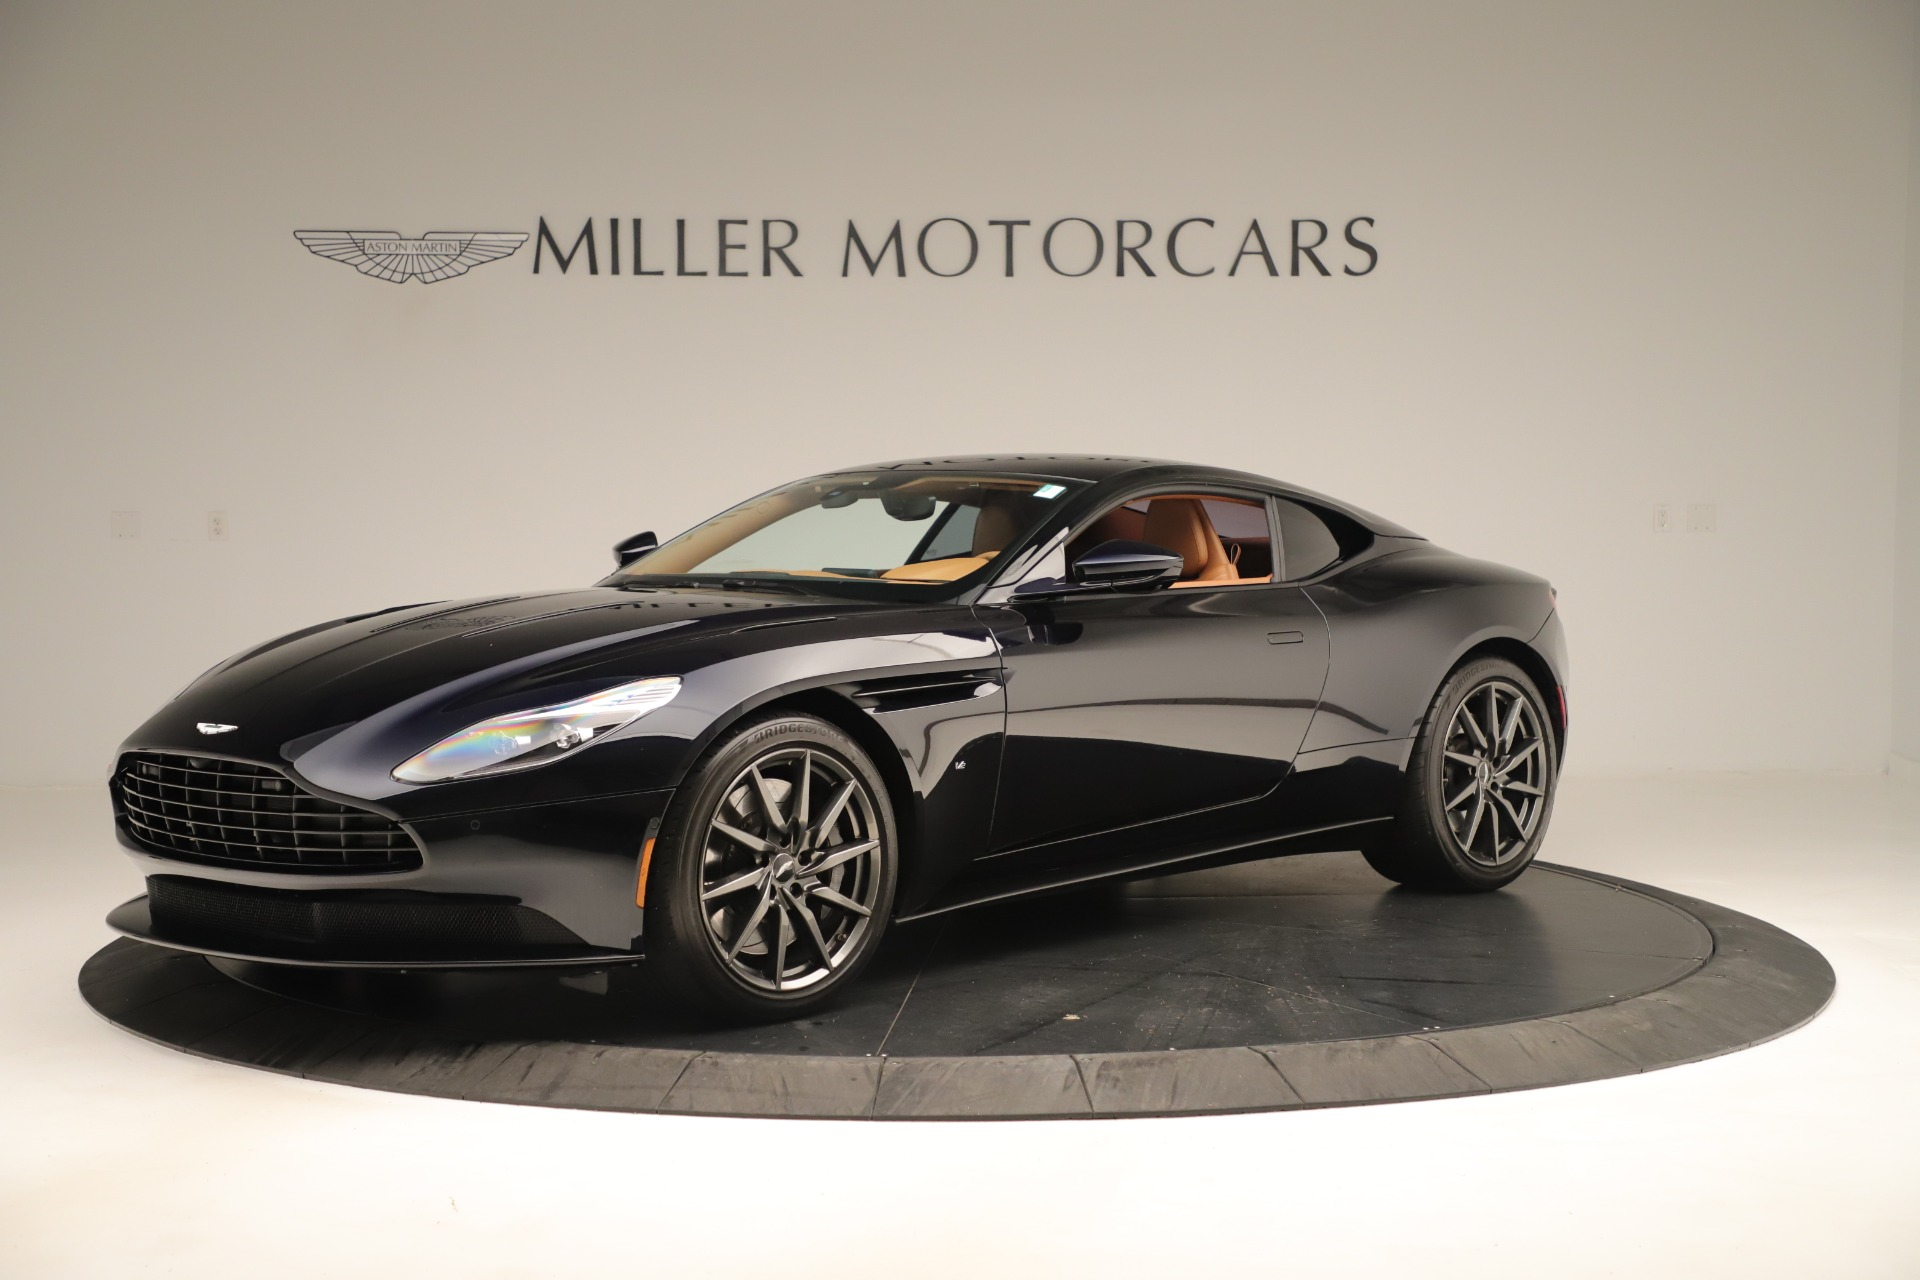 Used 2017 Aston Martin DB11 Launch Edition for sale Sold at Bentley Greenwich in Greenwich CT 06830 1